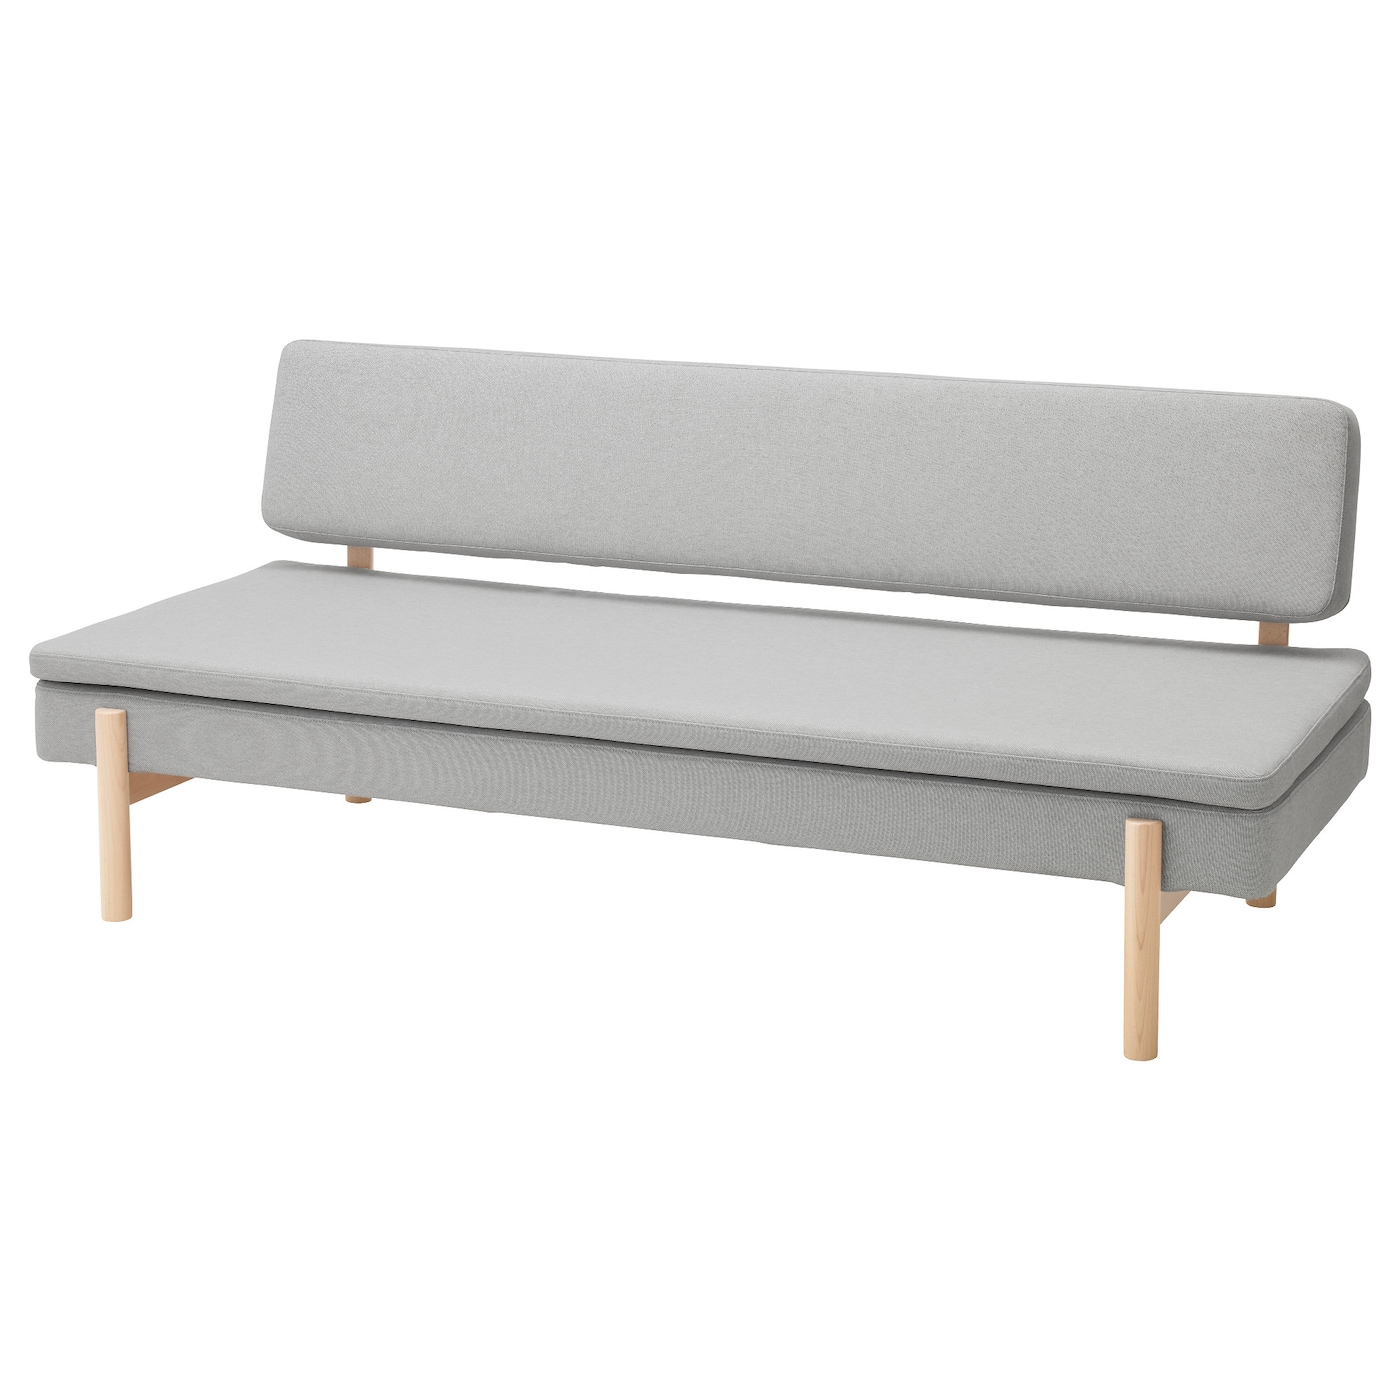 Ypperlig three seat sofa bed ramna light grey ikea for Ikea gray sofa